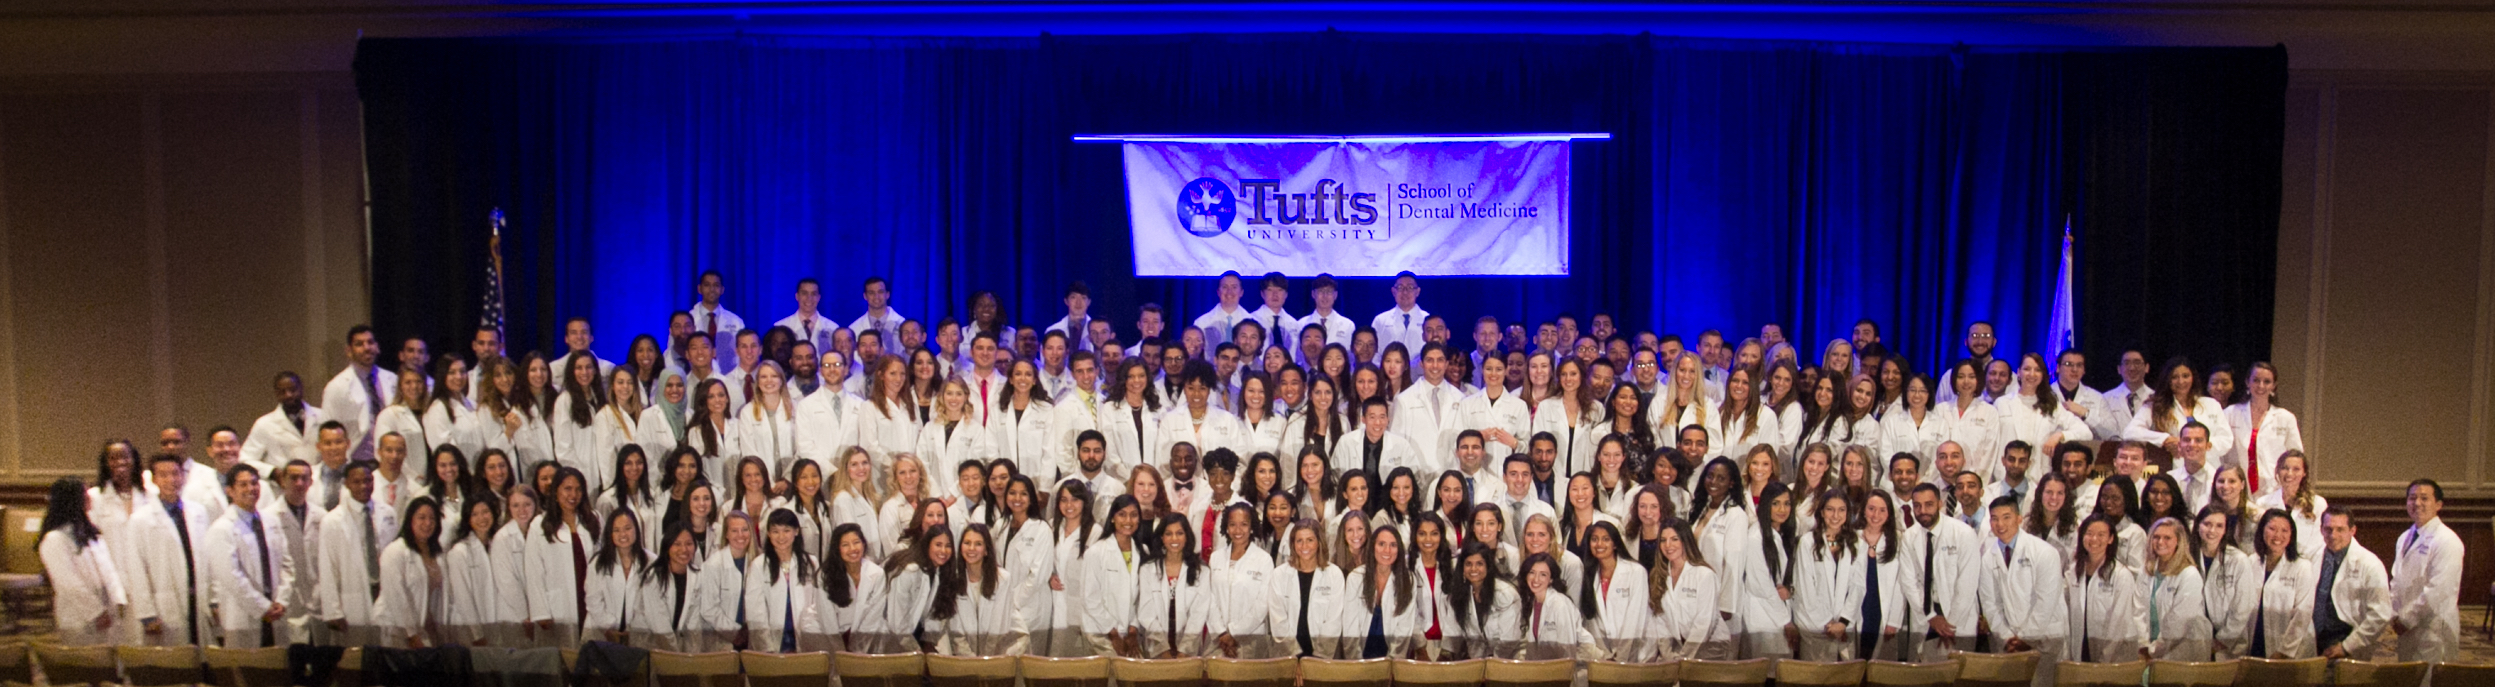 TUSDM Class of 2019 (D19) | Dental Central